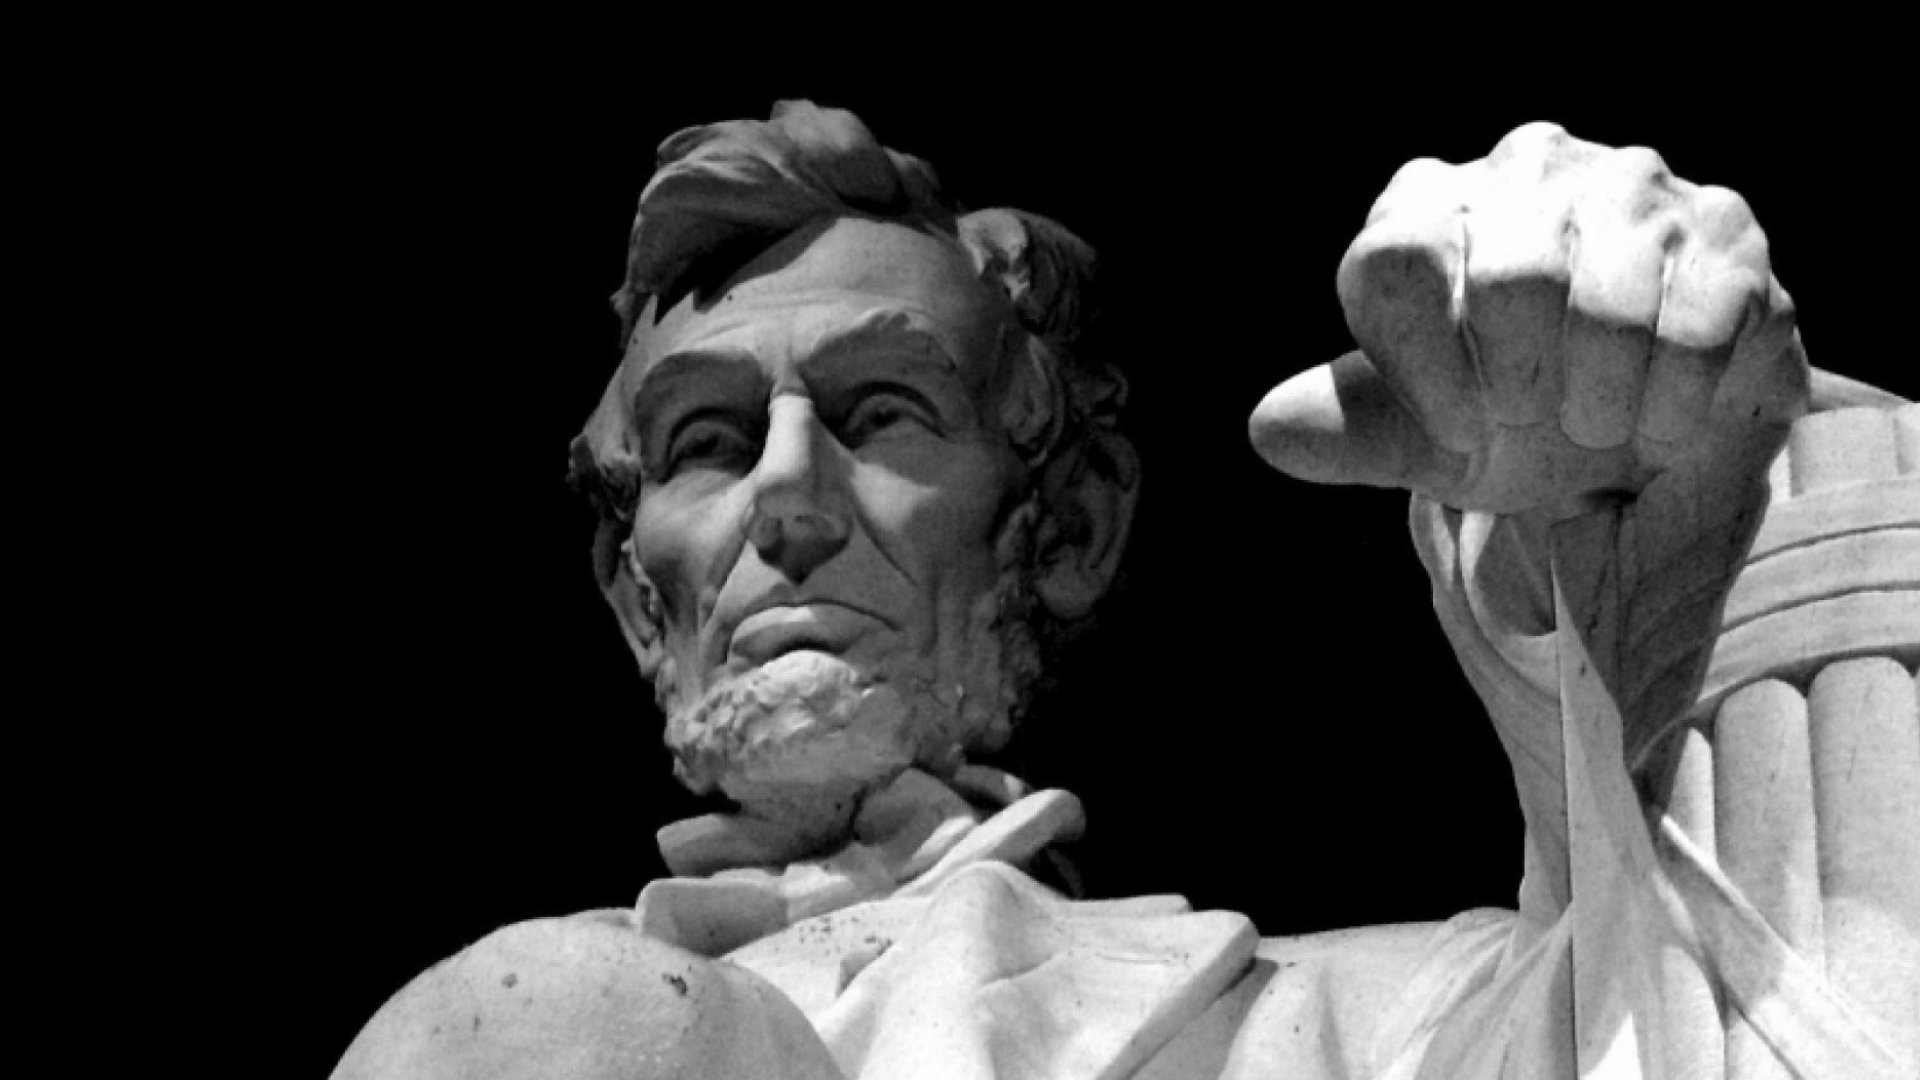 7 Timeless Communication Tips From Abraham Lincoln